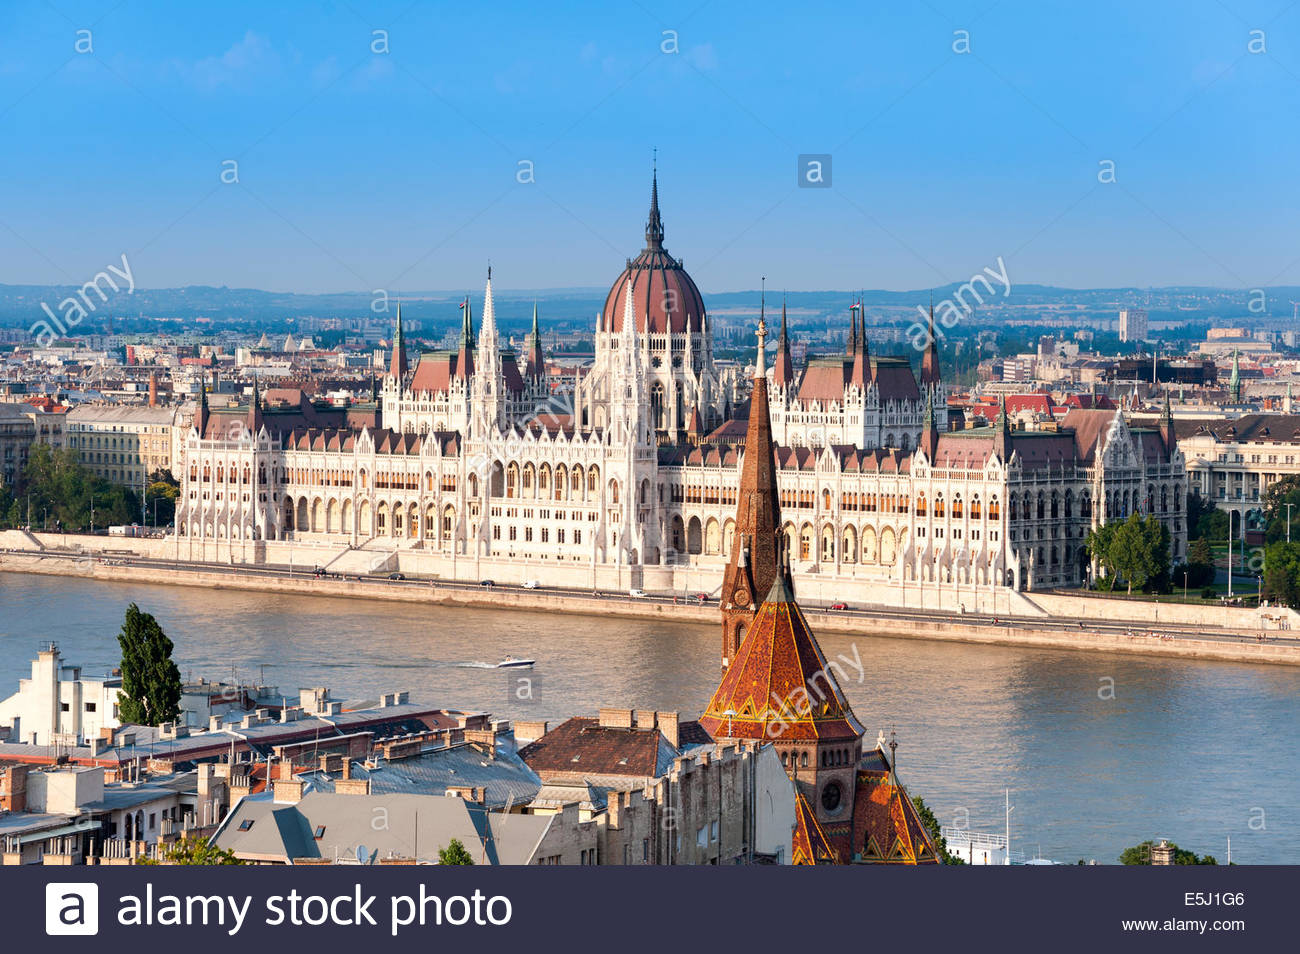 View of the river Danube and Hungarian Parliament Building, Budapest, Hungary - Stock Image